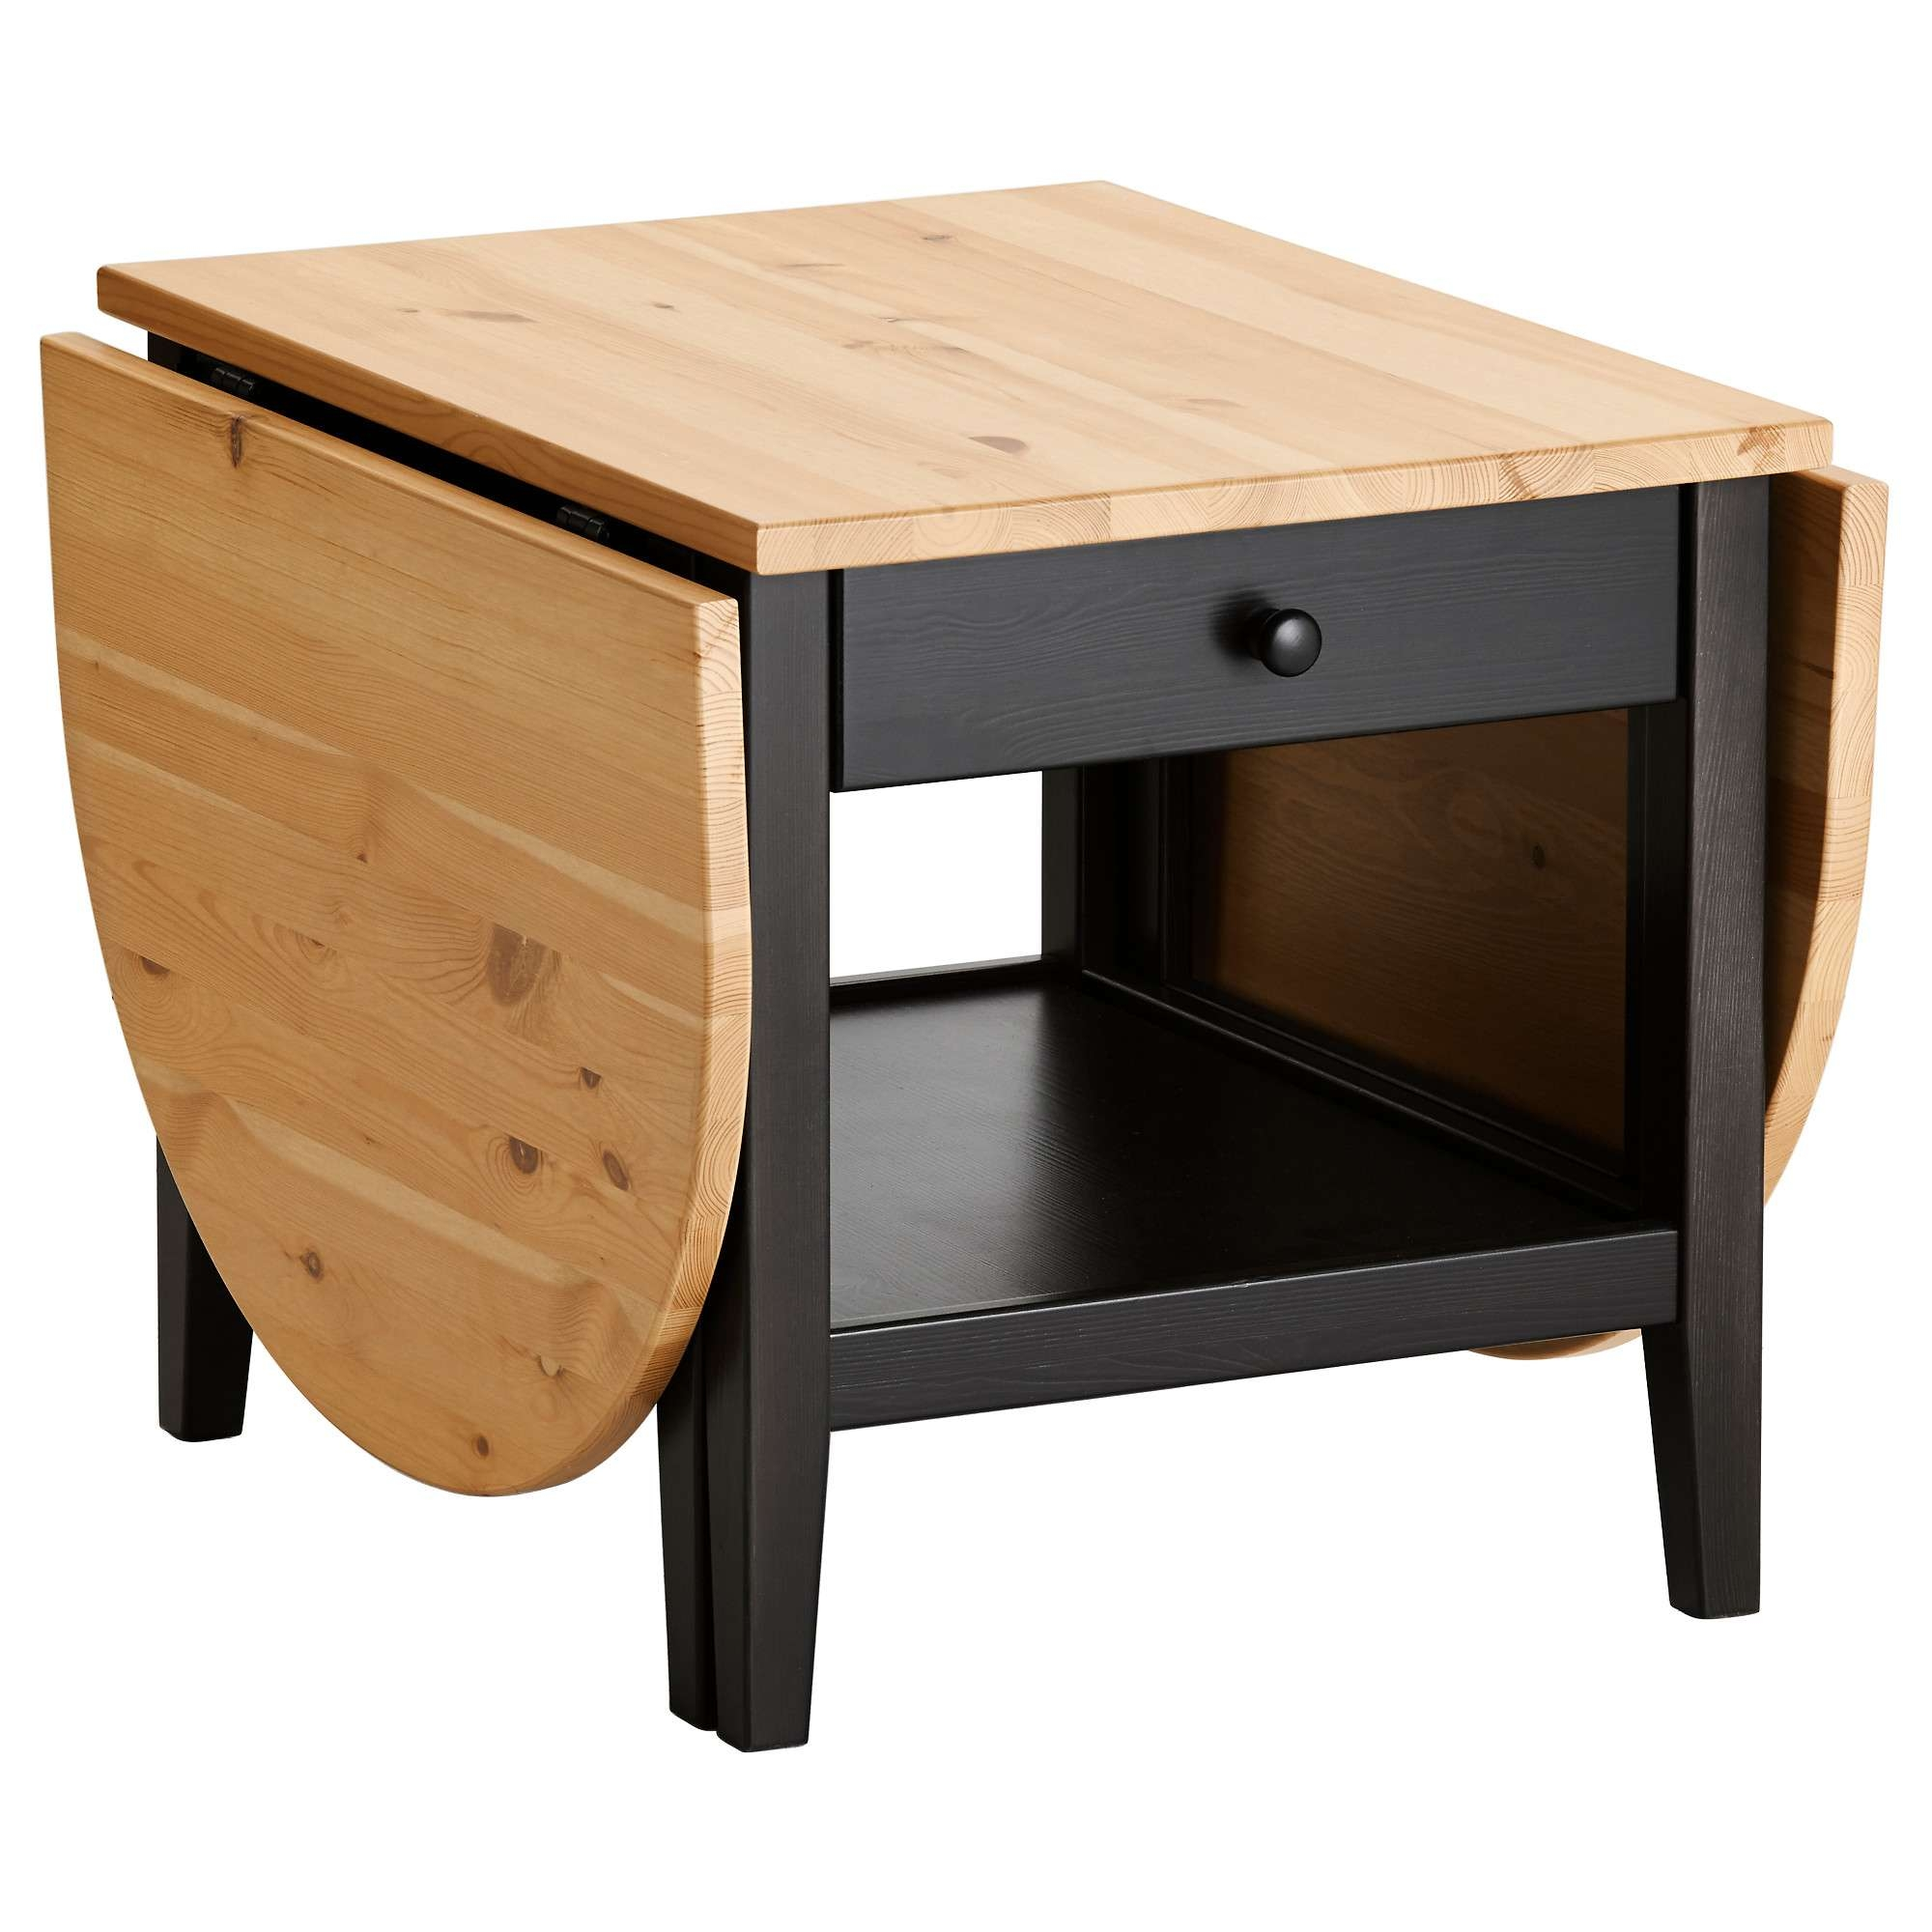 Coffee Table : Wonderful Ikea Table Tops Pull Up Coffee Table C In Latest Pull Up Coffee Tables (View 19 of 20)